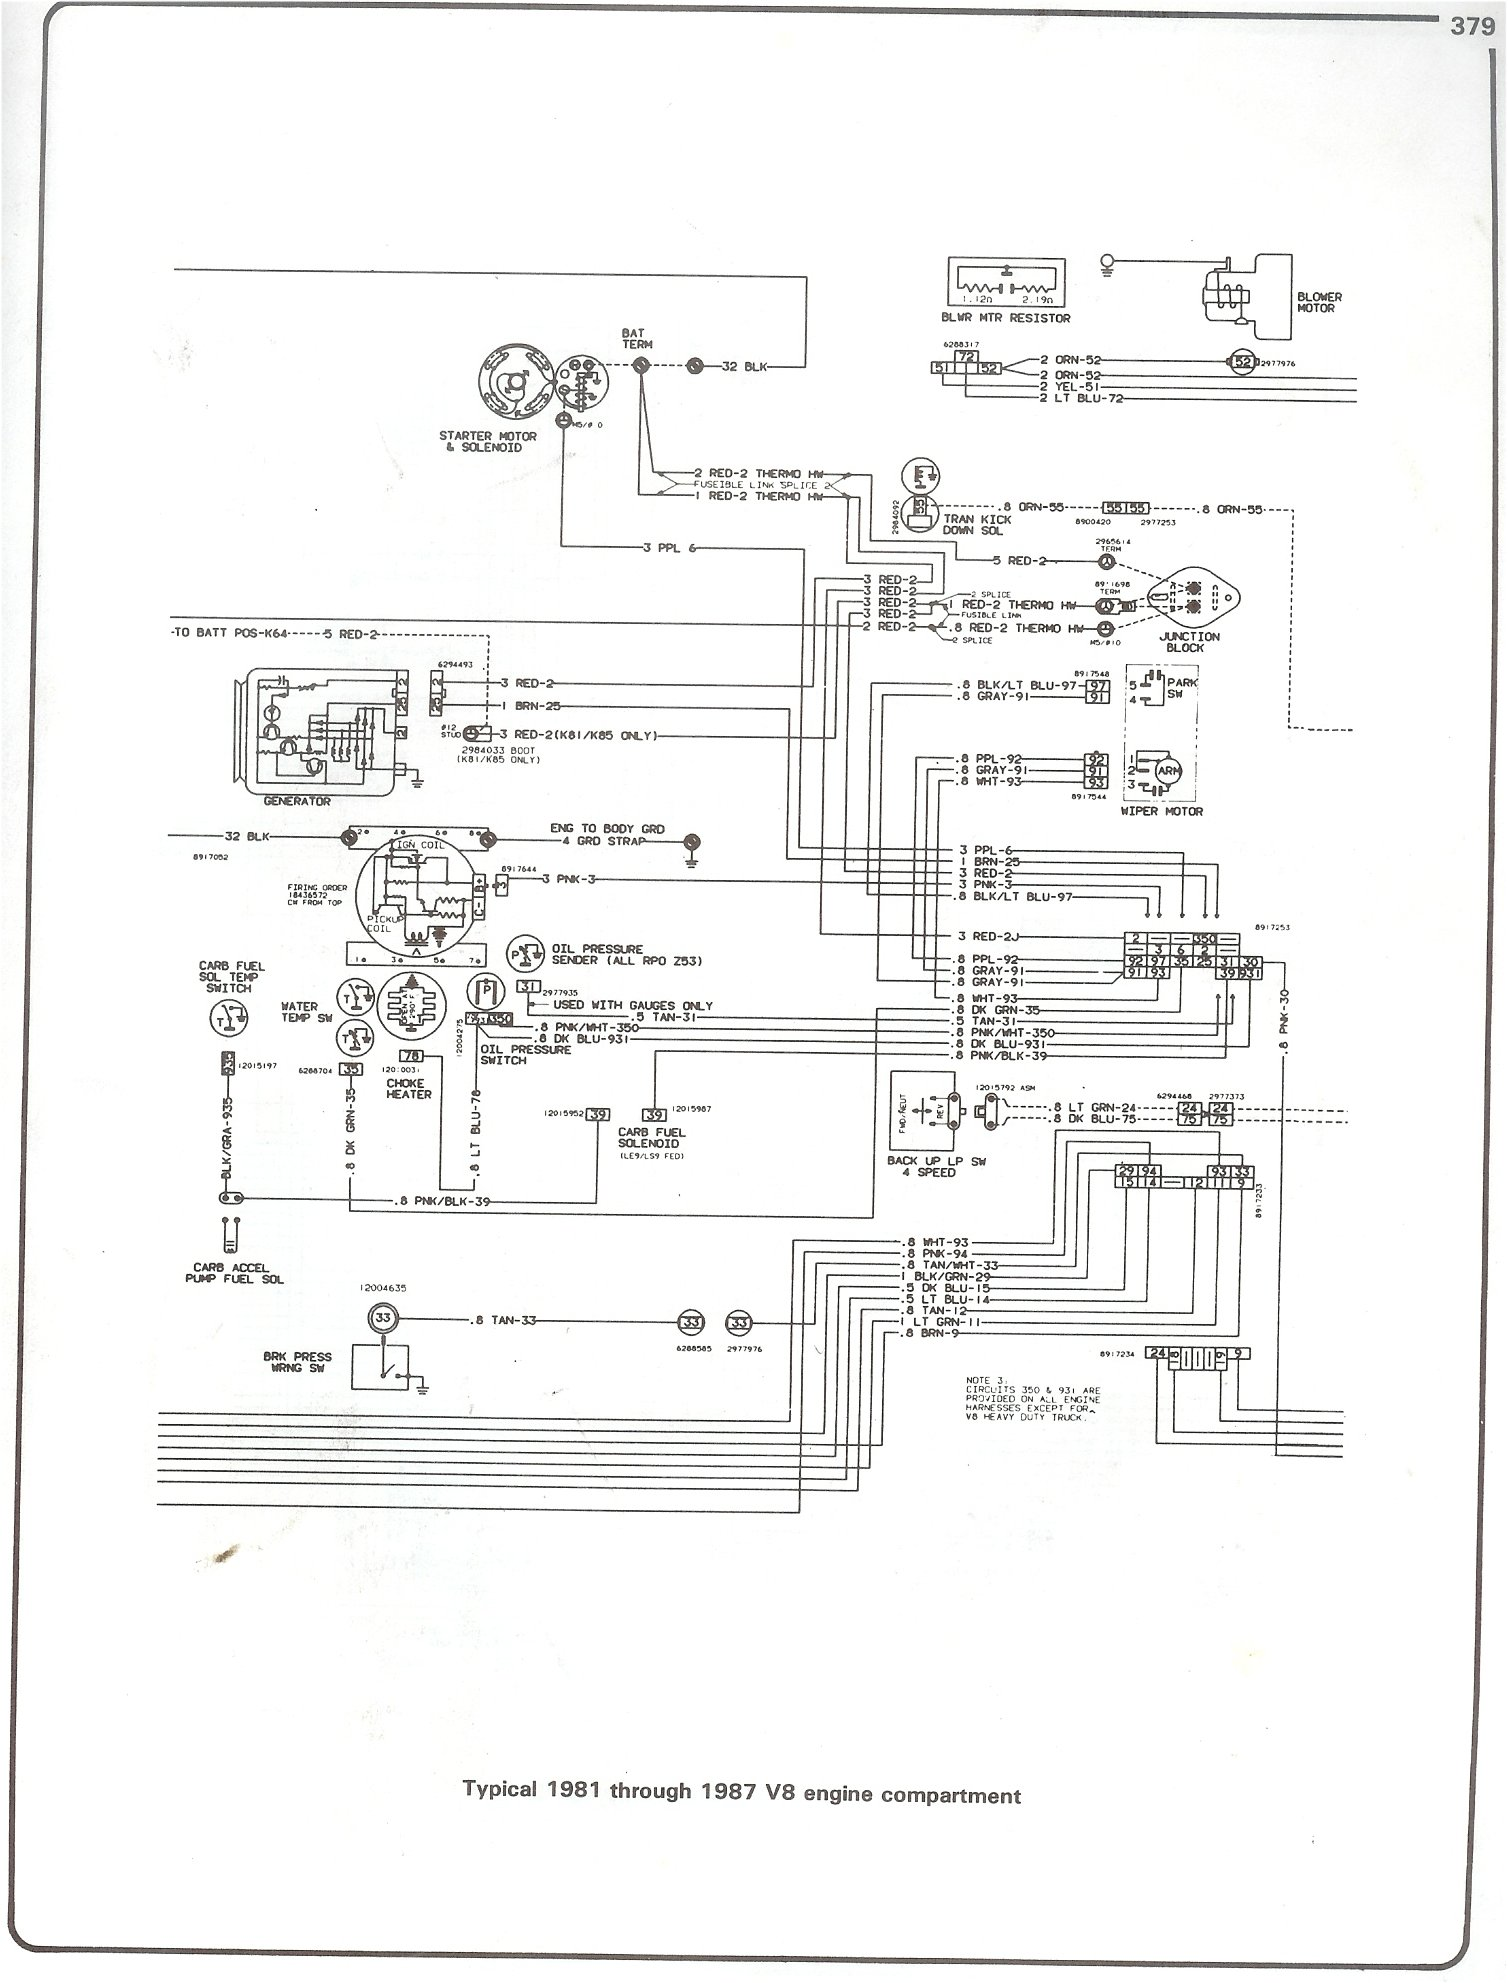 81 87_V8_engine complete 73 87 wiring diagrams 1986 chevy k10 wiring harness at gsmportal.co